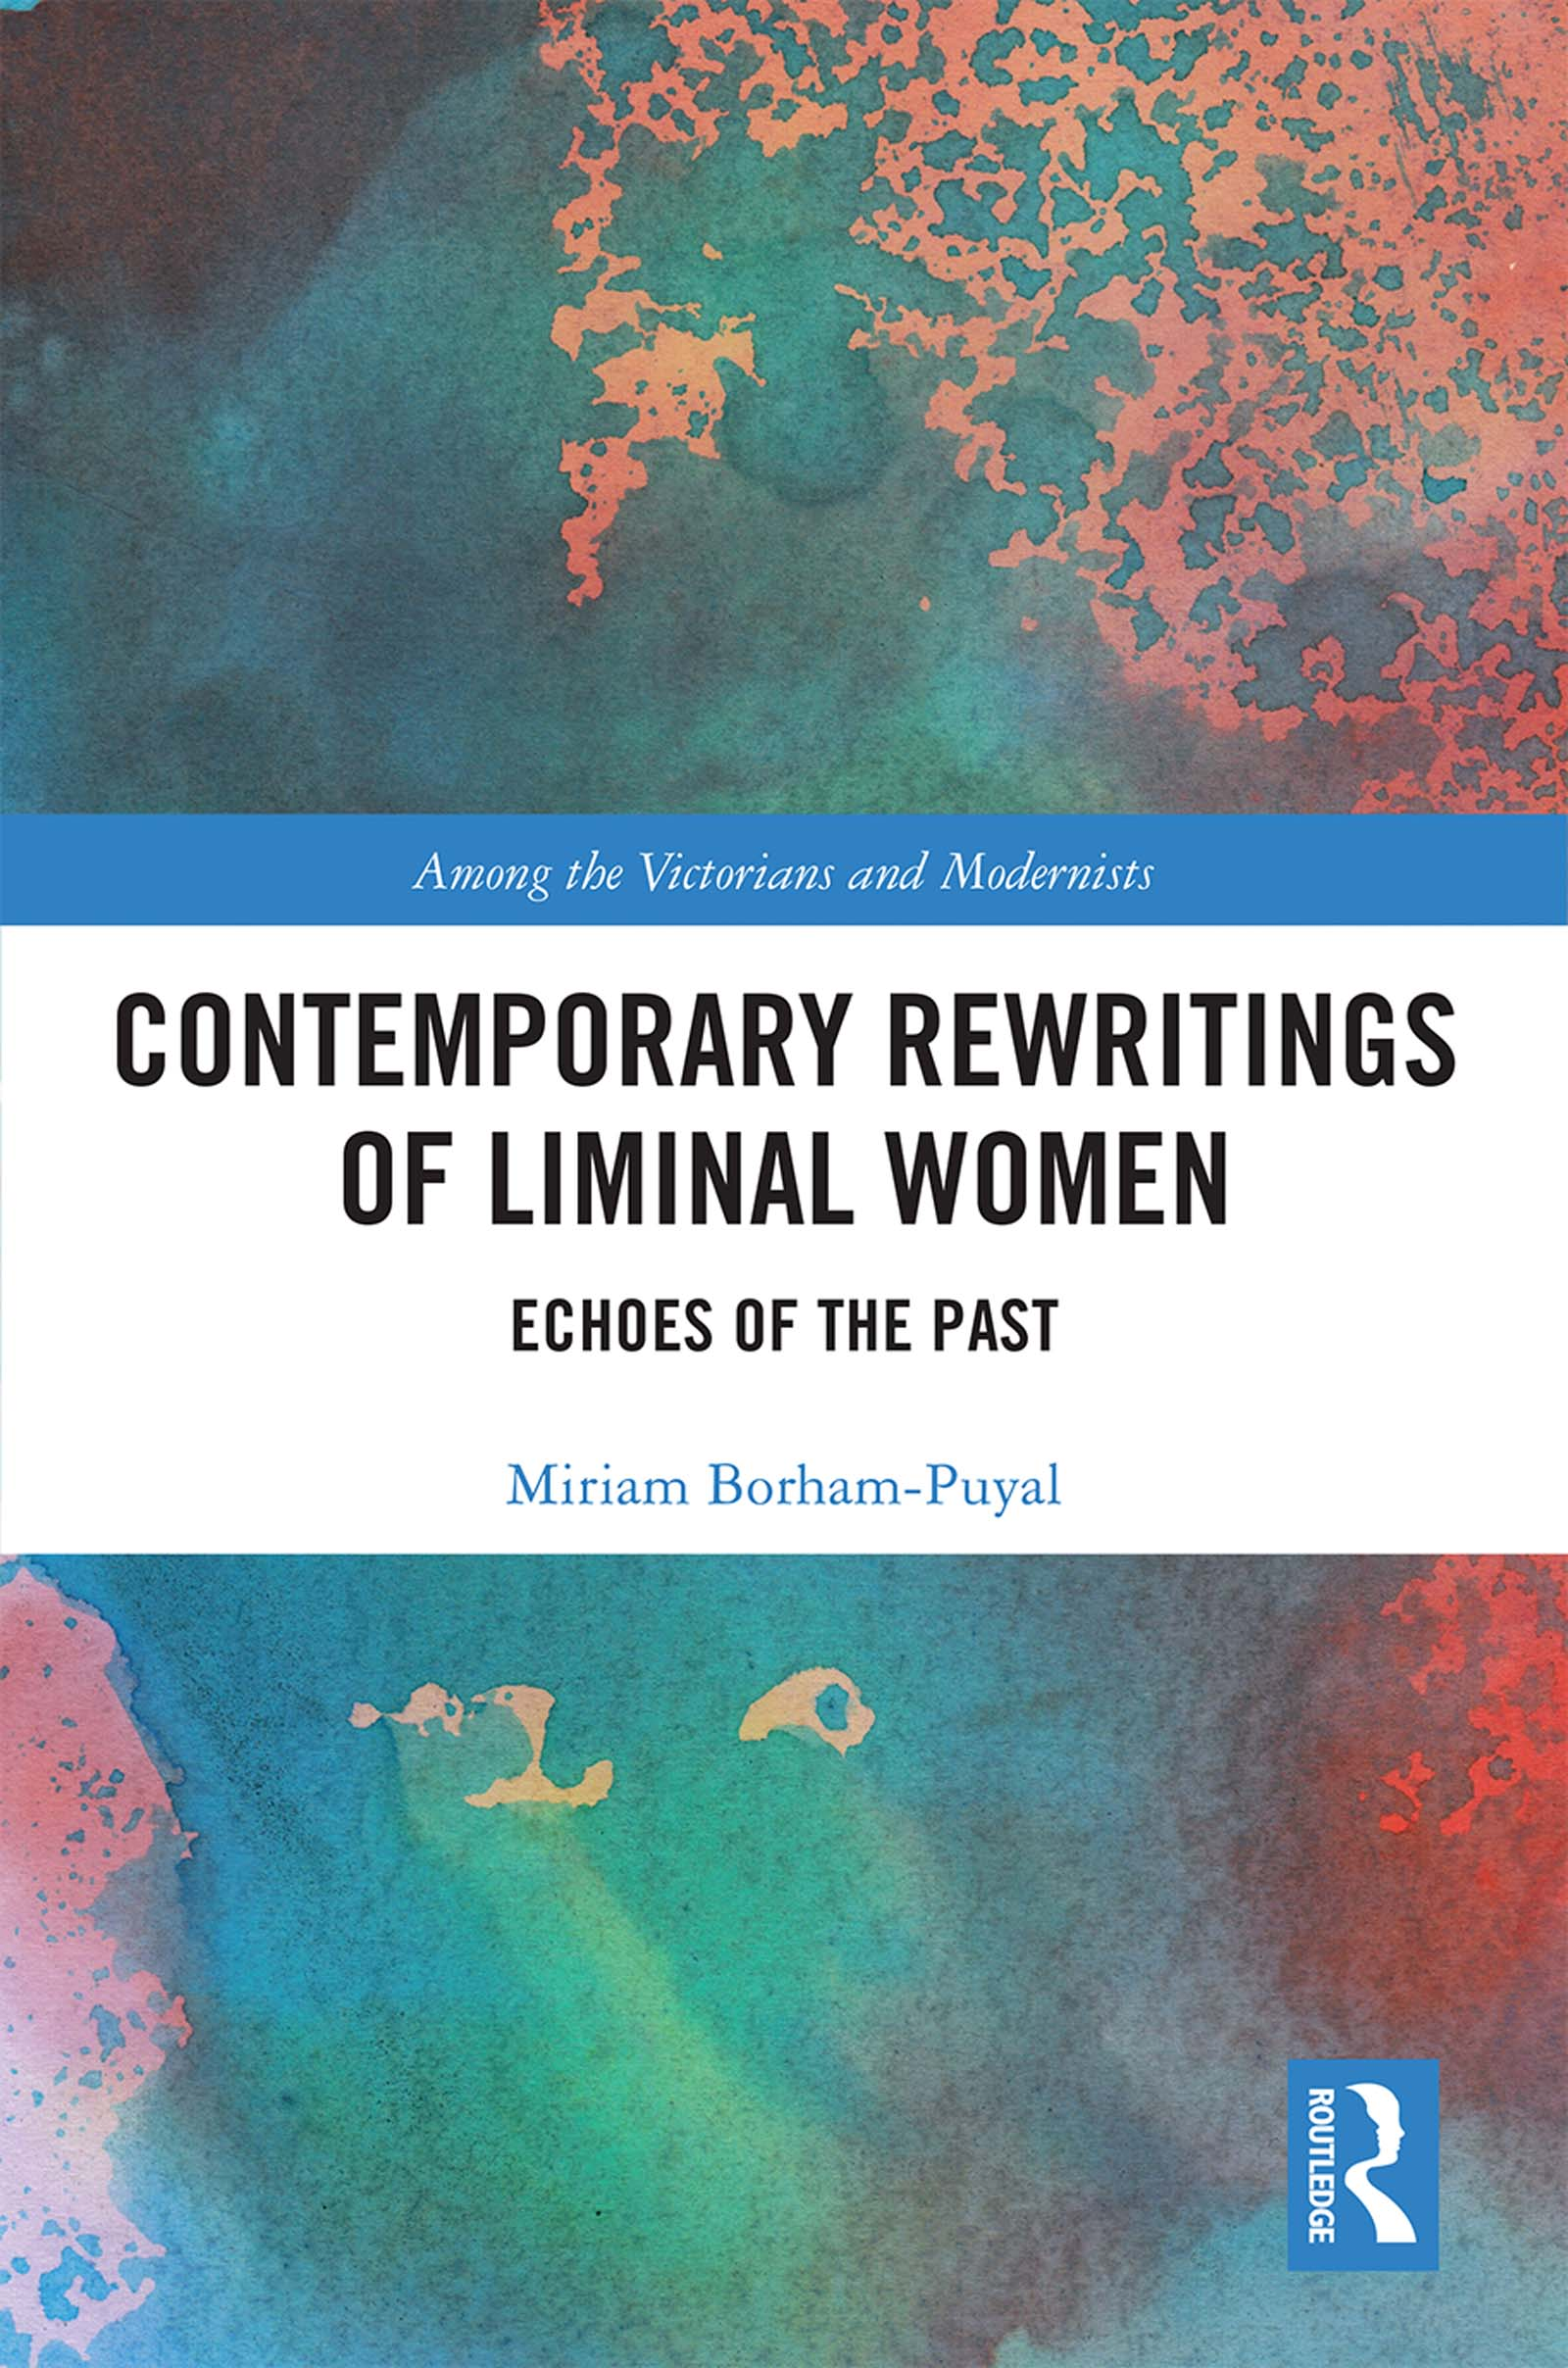 Contemporary Rewritings of Liminal Women: Echoes of the Past book cover